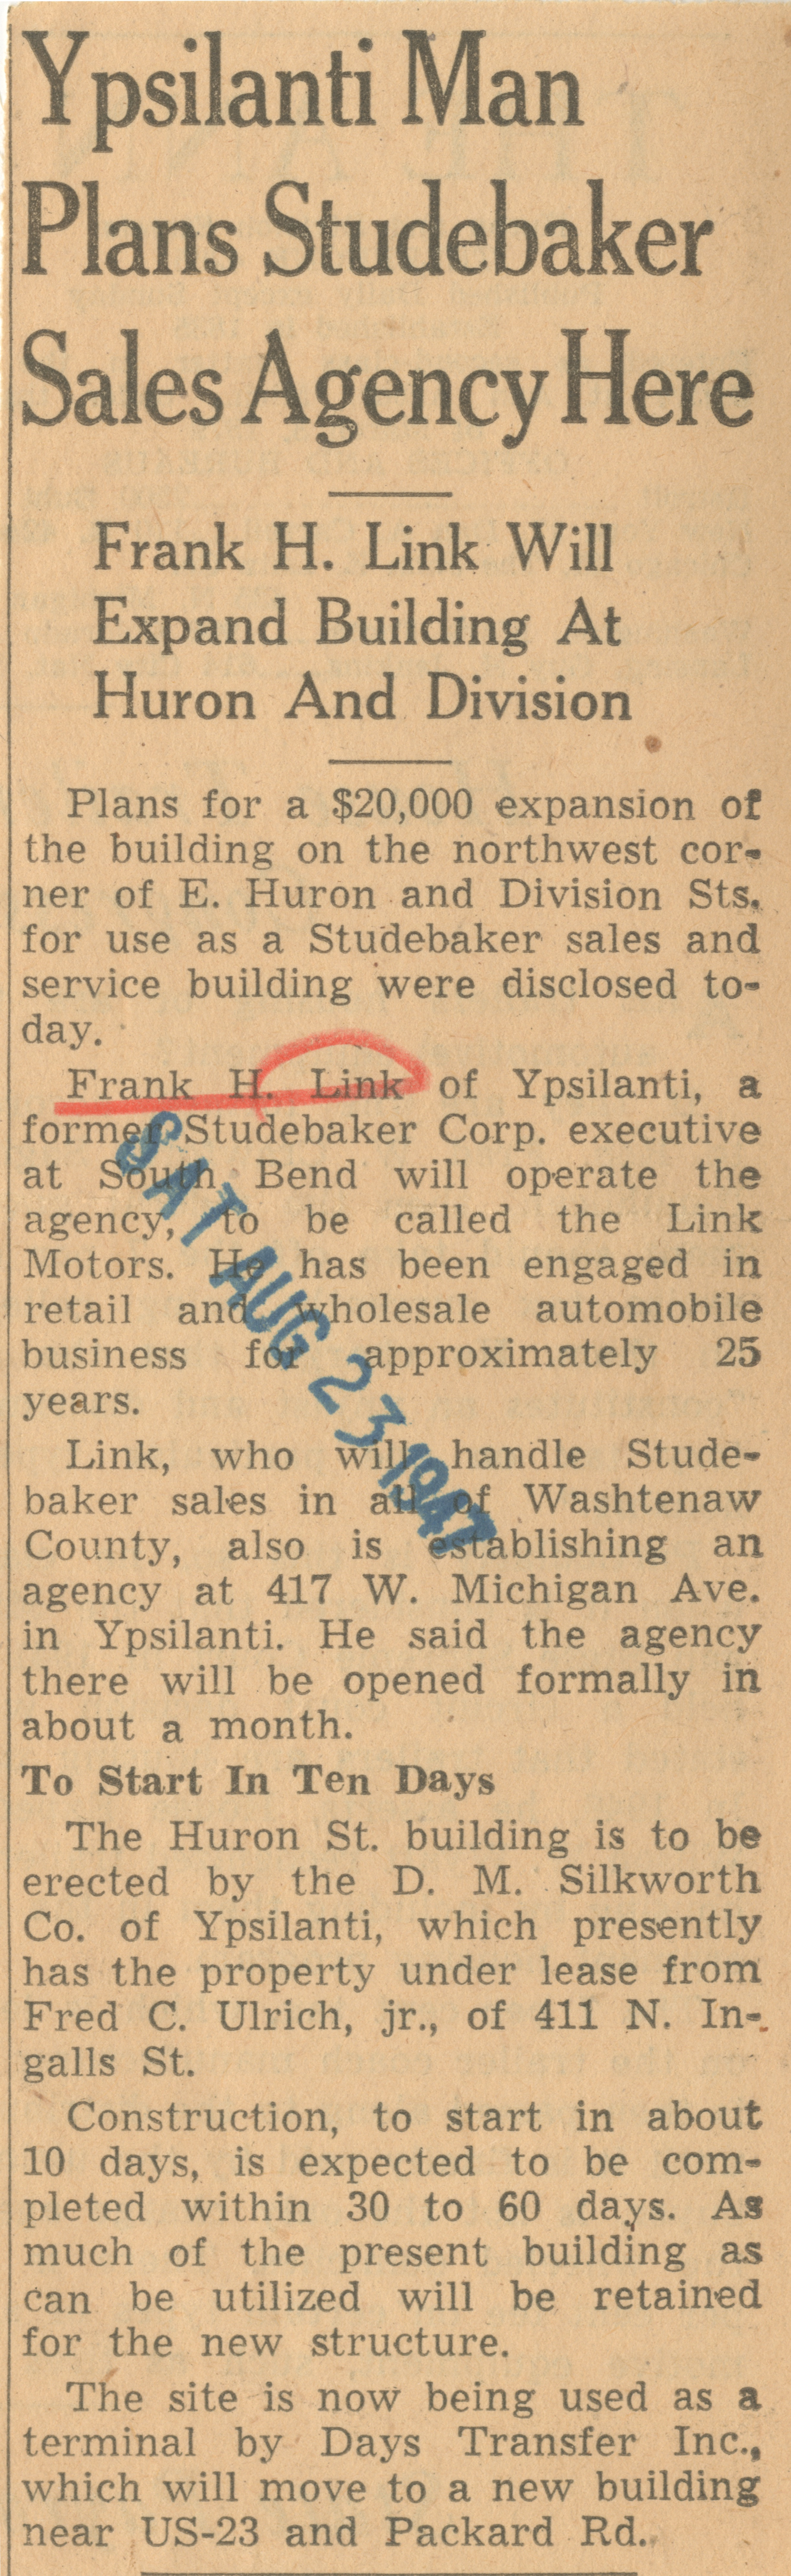 Ypsilanti Man Plans Studebaker Sales Agency Here image